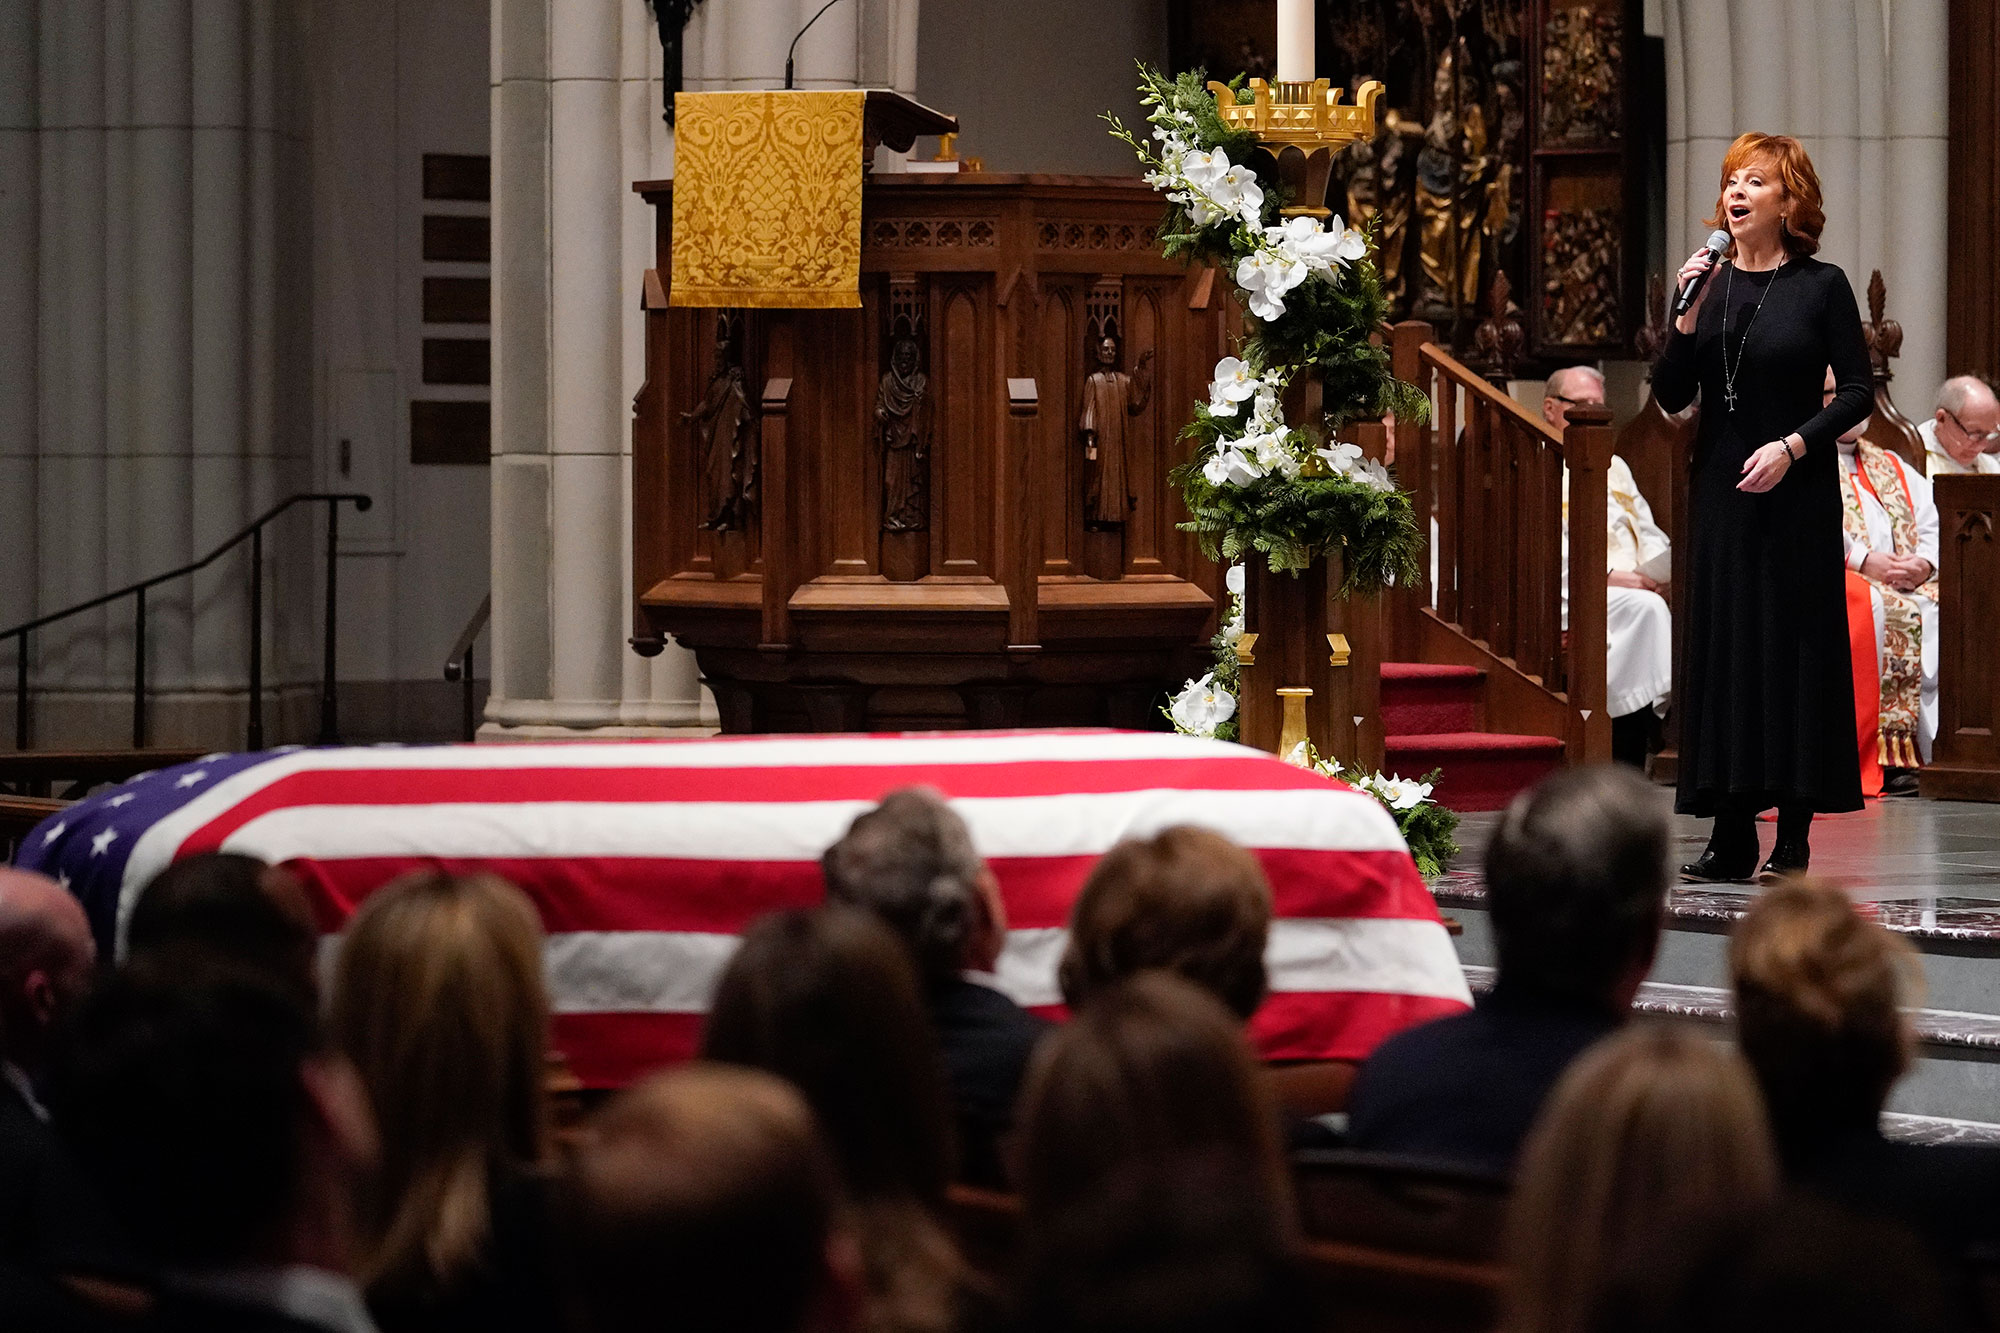 "<div class=""meta image-caption""><div class=""origin-logo origin-image none""><span>none</span></div><span class=""caption-text"">Reba McEntire sings ""The Lord's Prayer"" during a funeral service for former President George H.W. Bush at St. Martin's Episcopal Church Thursday, Dec. 6, 2018, in Houston. (David J. Phillip, Pool/AP Photo)</span></div>"